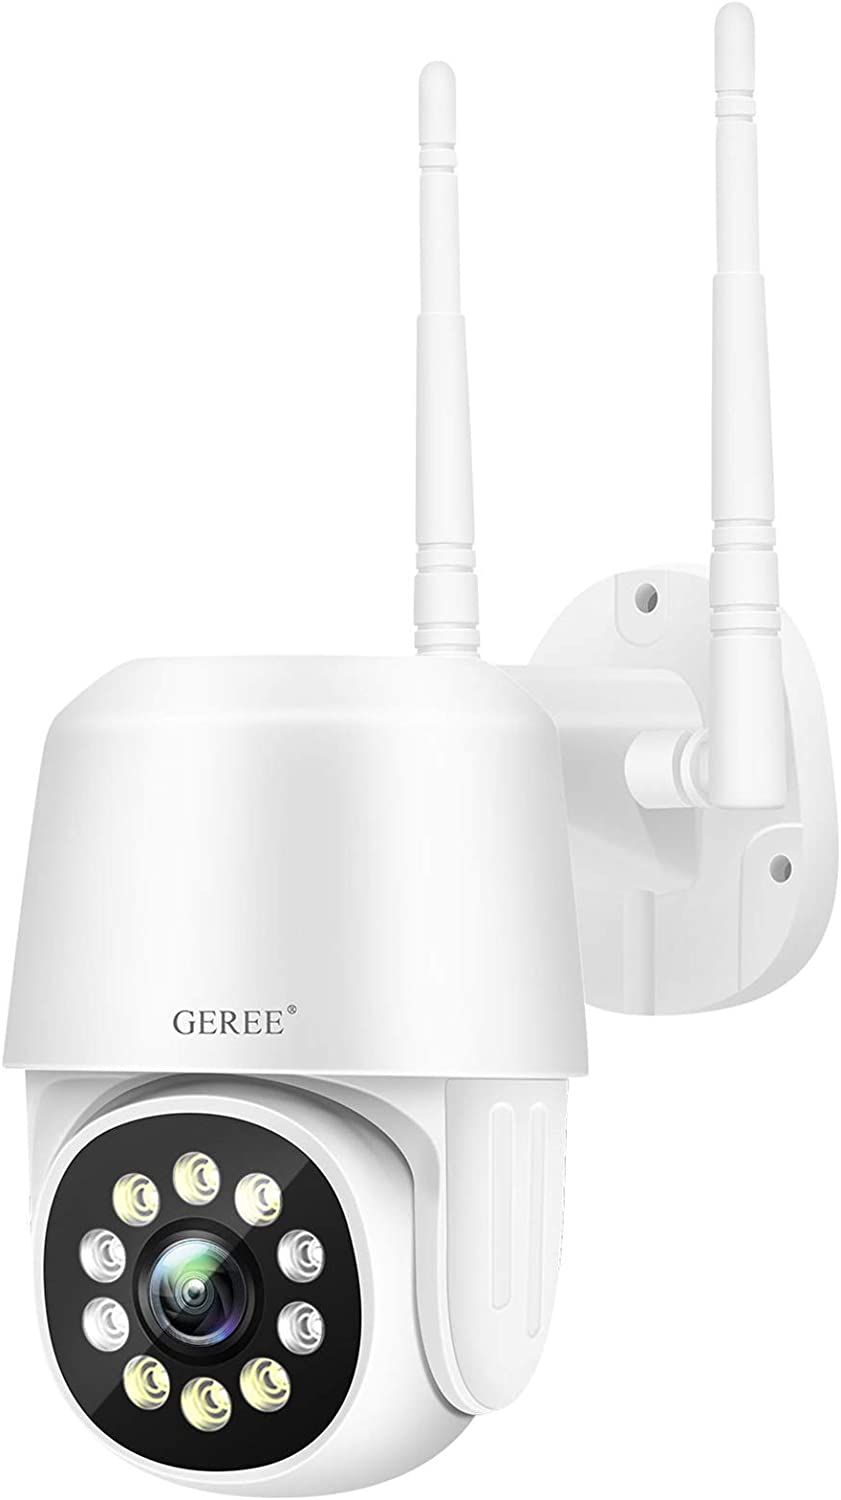 Security Camera Outdoor ,GEREE 1080P Pan Tilt Security Surveillance WiFi IP Home Security Cameras Night Vision,2-Way Audio ,Motion Alert,Cloud Storage Works with Alexa